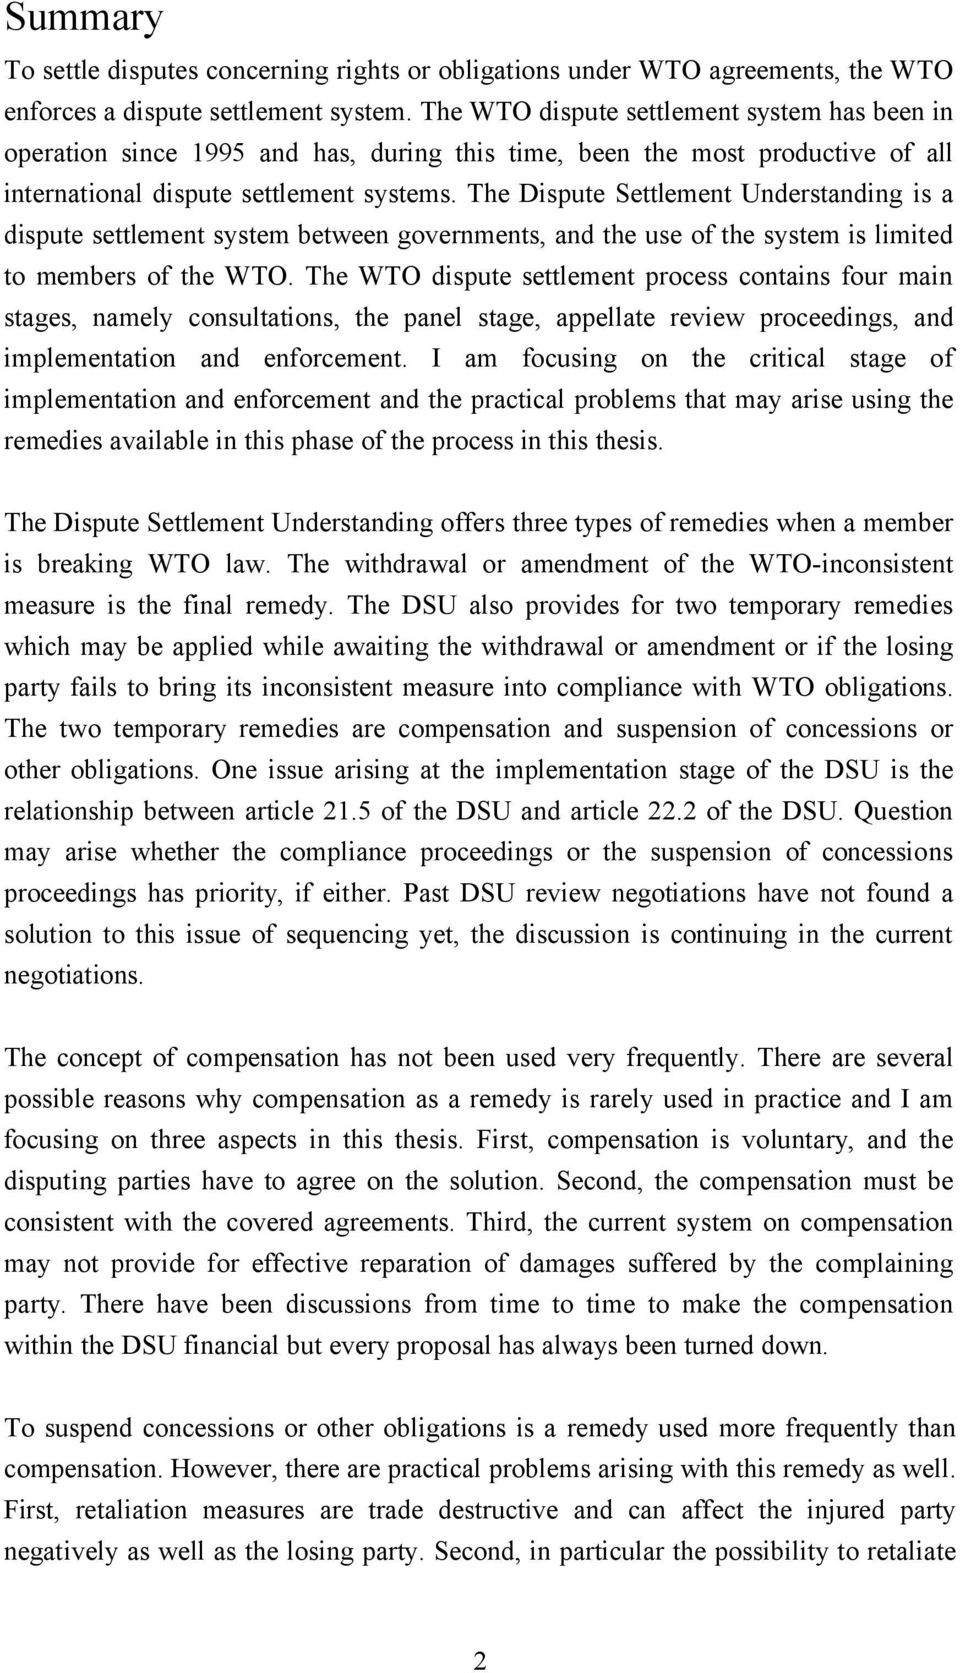 The Dispute Settlement Understanding is a dispute settlement system between governments, and the use of the system is limited to members of the WTO.